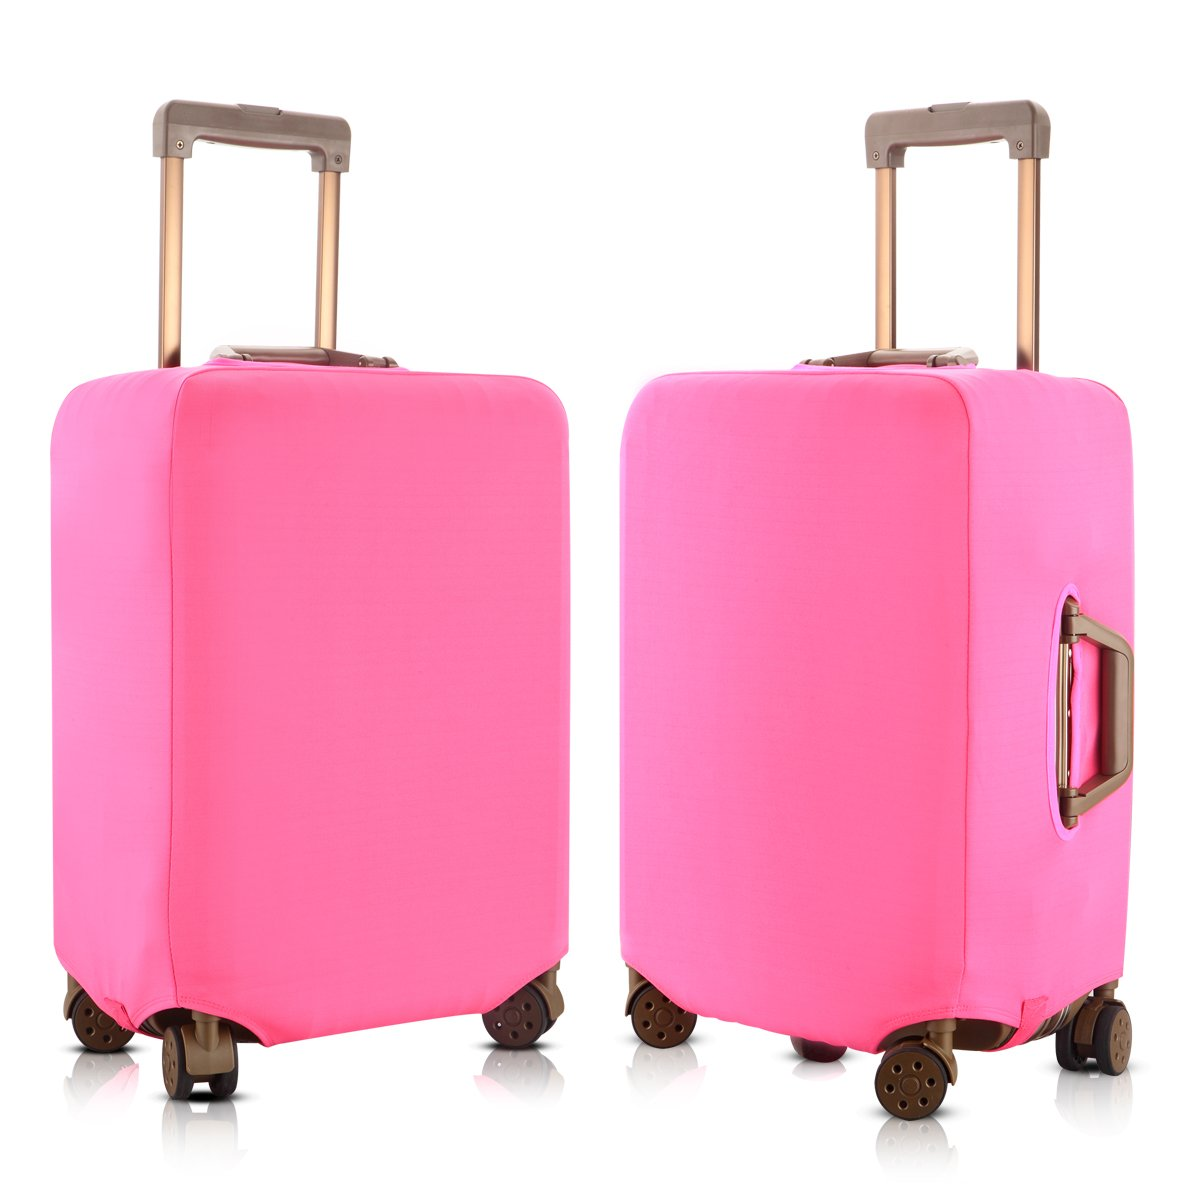 Pink, S Travel Luggage Elastic Cover Suitcase Washable Anti-Scratch Stretchy Protector